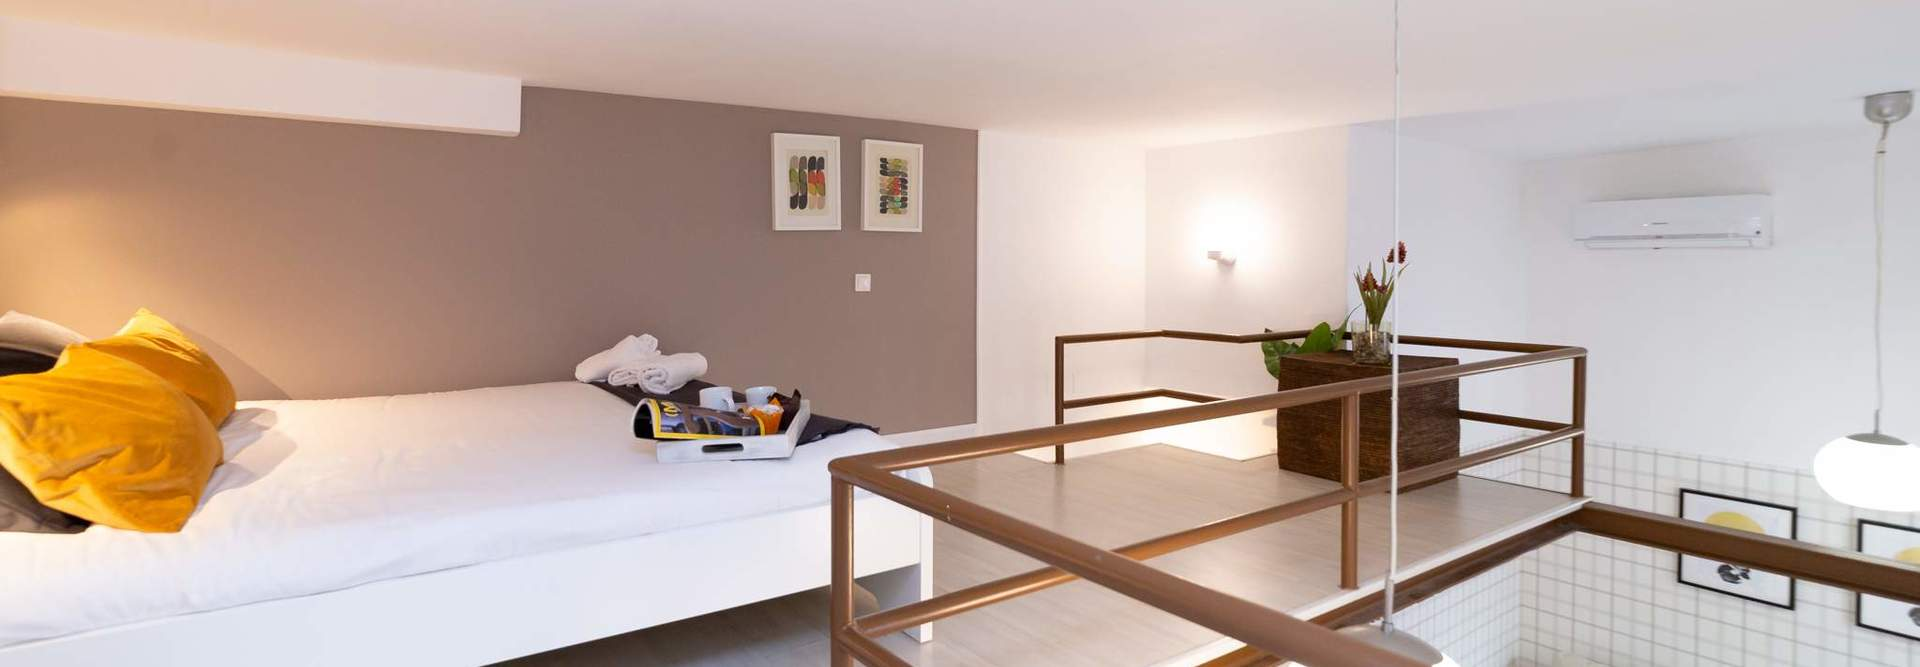 Home alquiler apartamentos madrid mad4rent 12